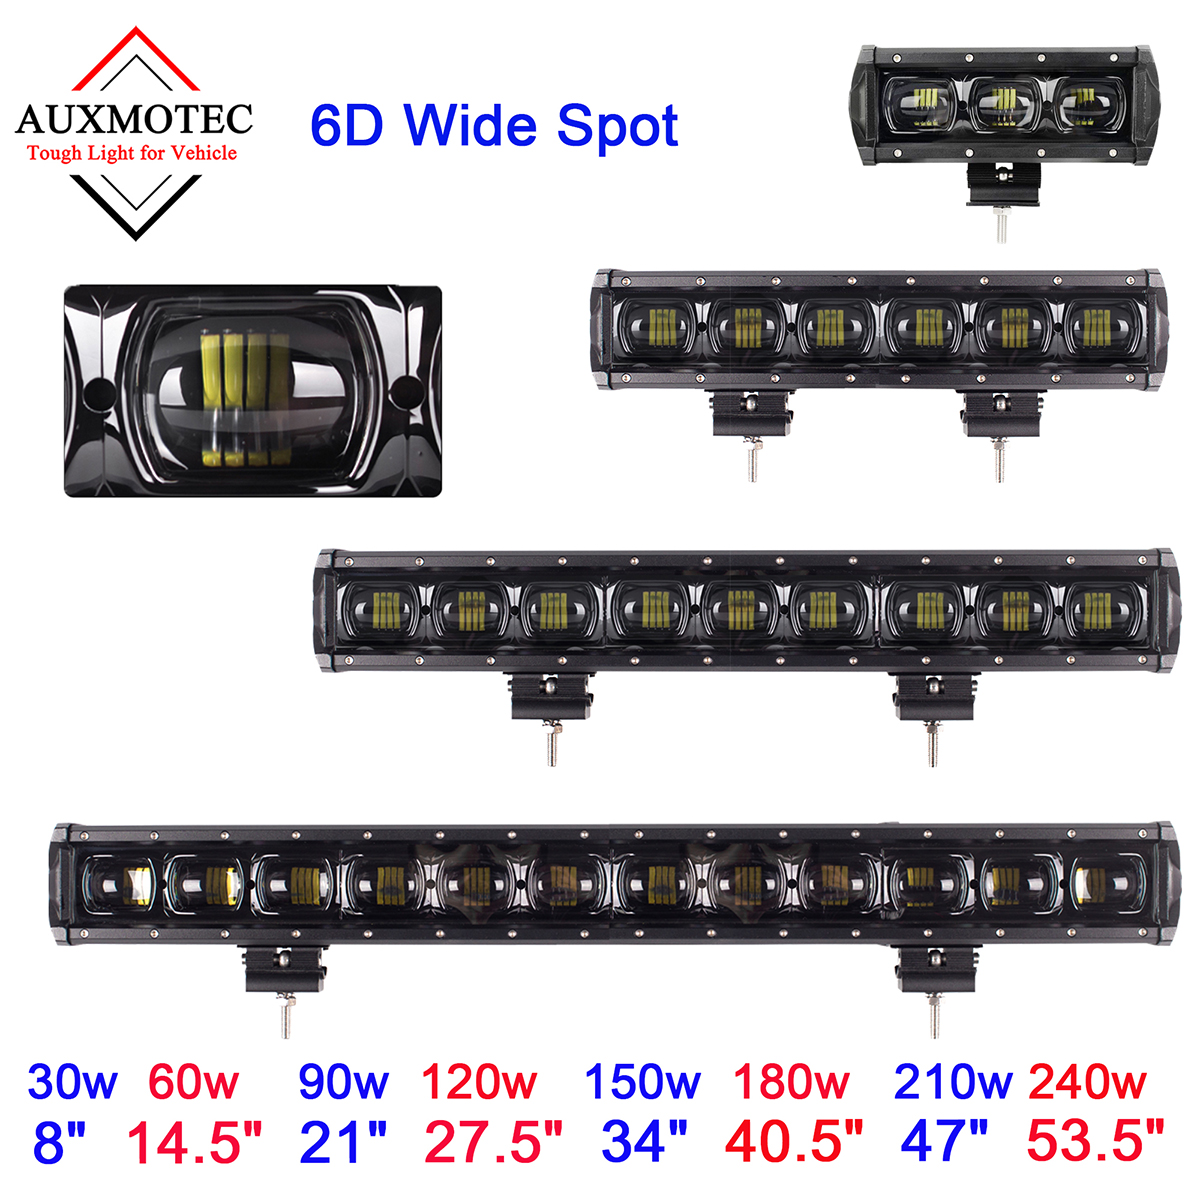 Led Light Bar 6d lens 30w 60w 90w 120w 150w 180w 210w 240w grille single row front bumber car roof lightbar 8 14.5 21 27.5 34 40.5 47 53.5 inch truck atv suv offroad off-road 4x4 4wd pickup 12v 24v (1)